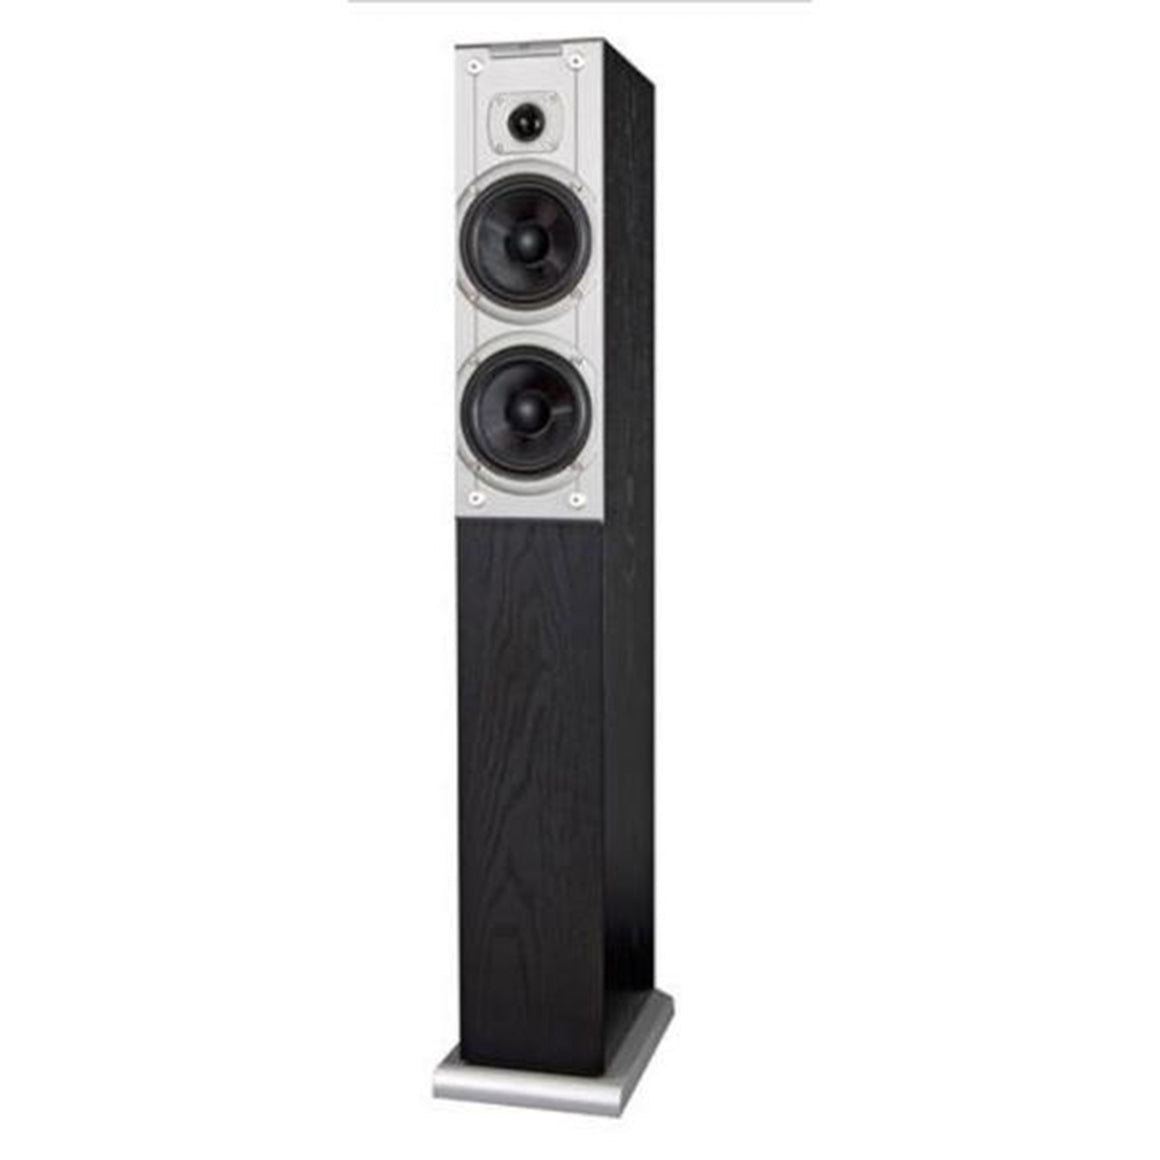 Audiovector Ki 3 Super Floor Standing Speakers at Melbourne Hi Fi, Australia